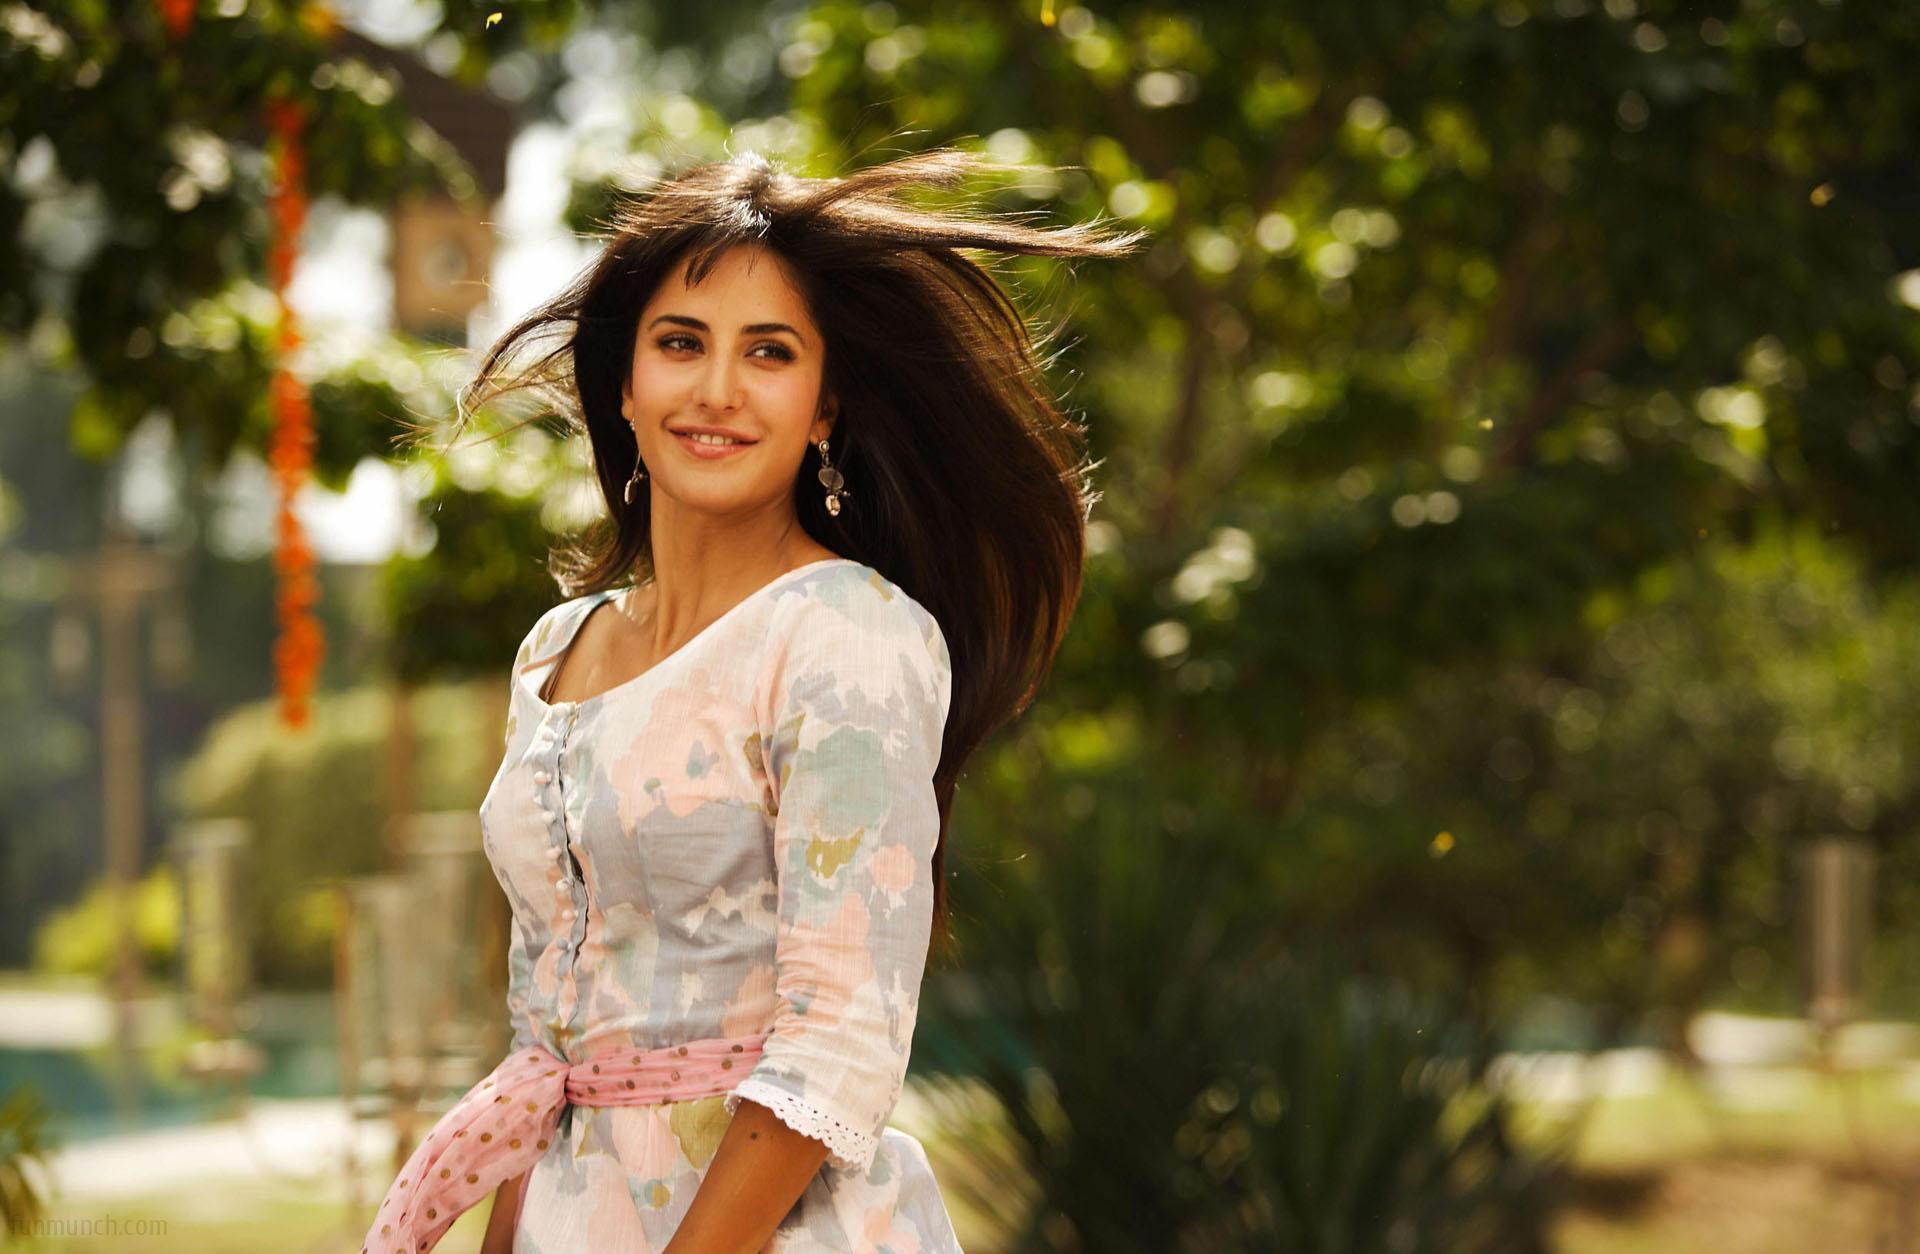 Katrina Kaif HD Wallpapers [49-60] • PoPoPics.com